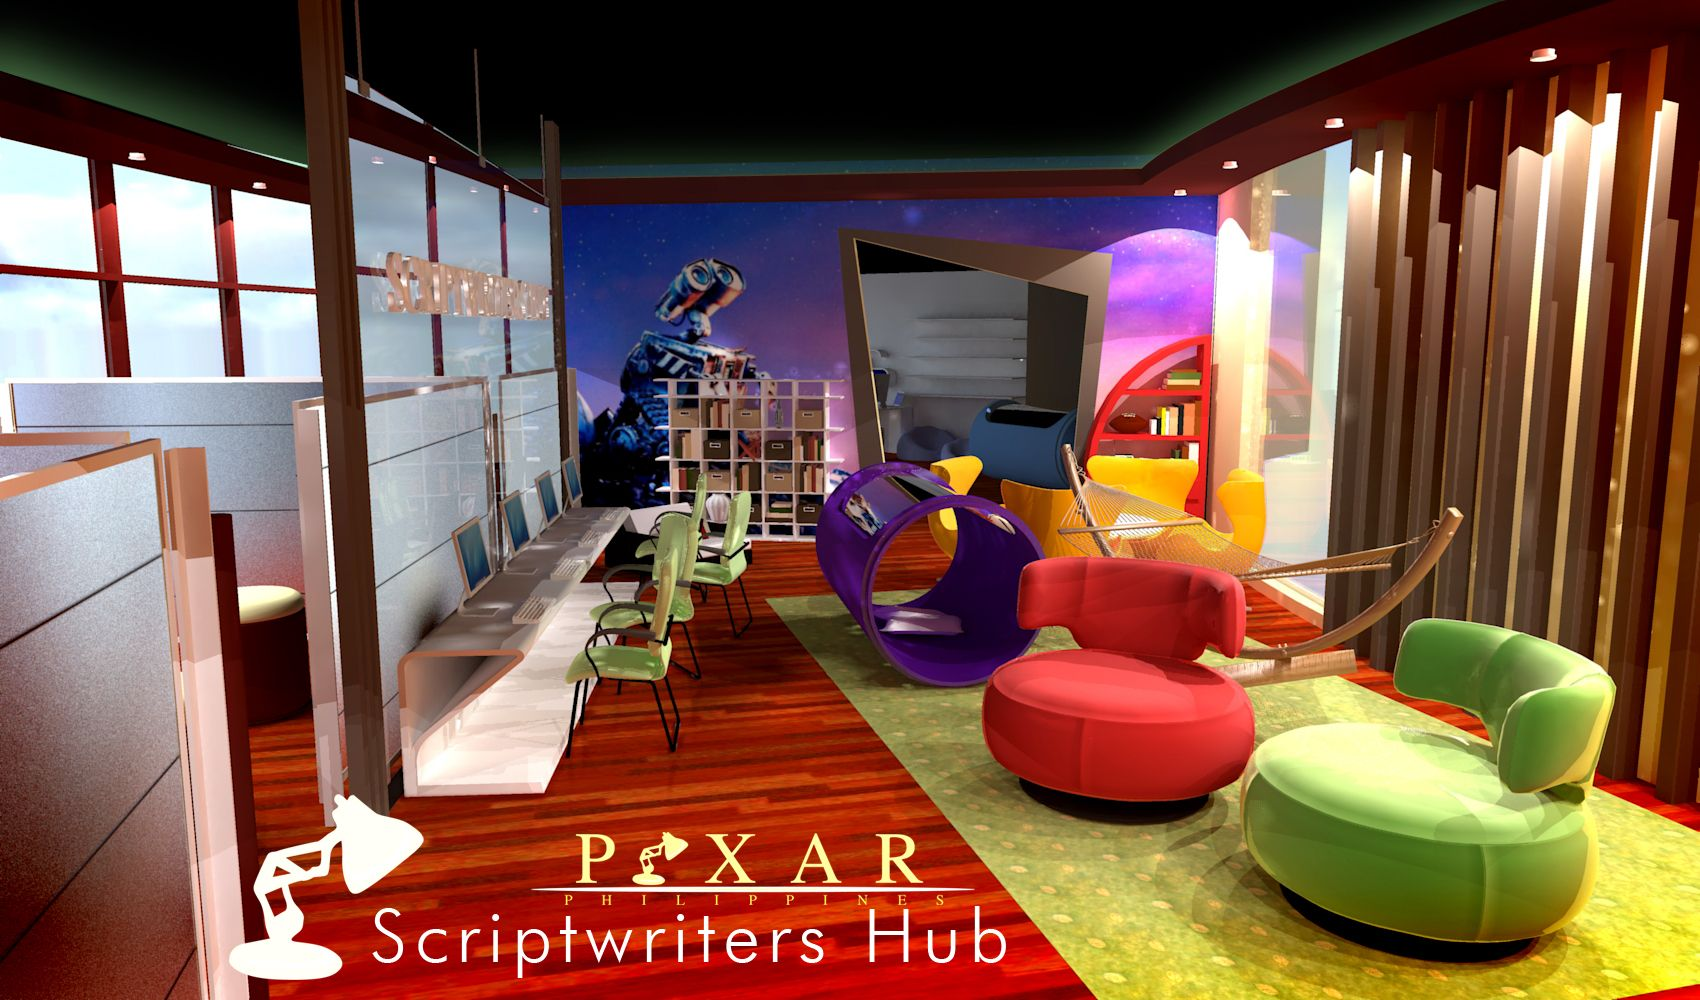 collaborative office space for pixar scriptwriters